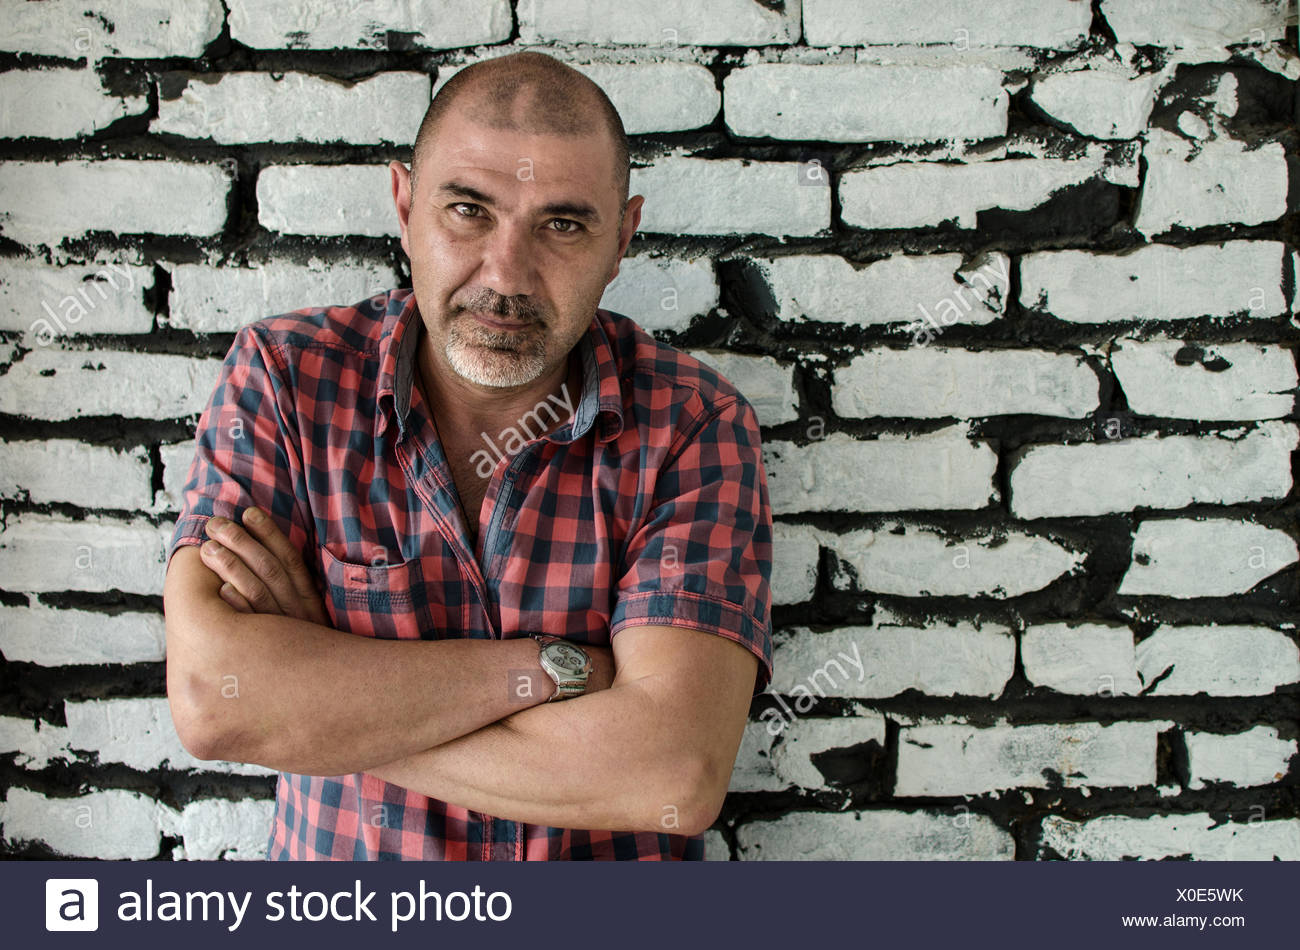 Portrait of a man with arms crossed standing by a brick wall - Stock Image